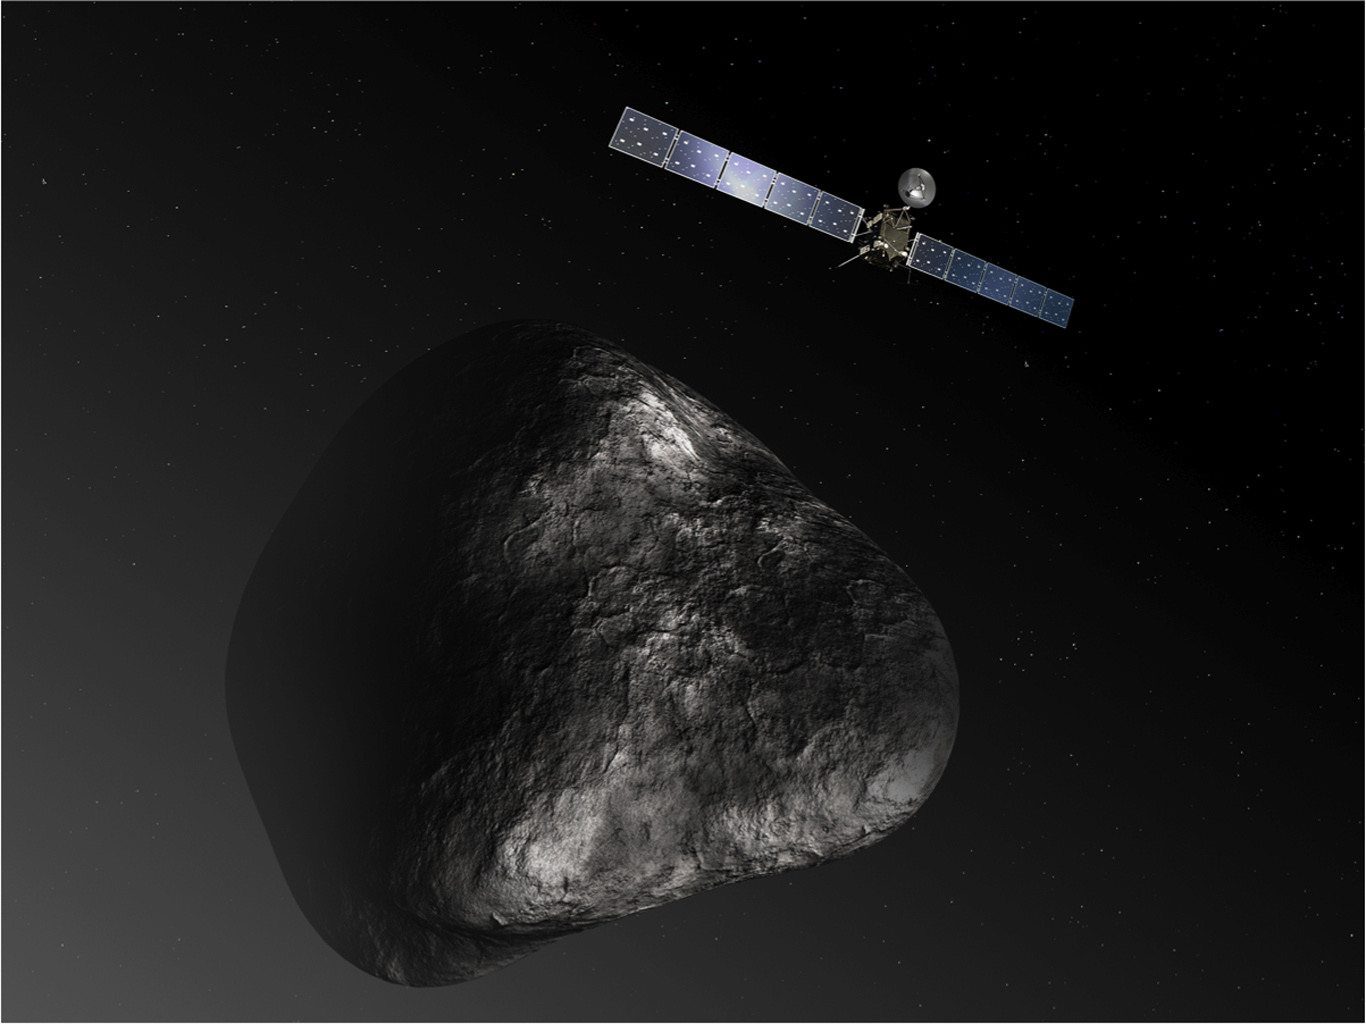 Artist's impression of the Rosetta orbiter at comet 67P/Churyumova-Gerasimenko. The image is not to scale.